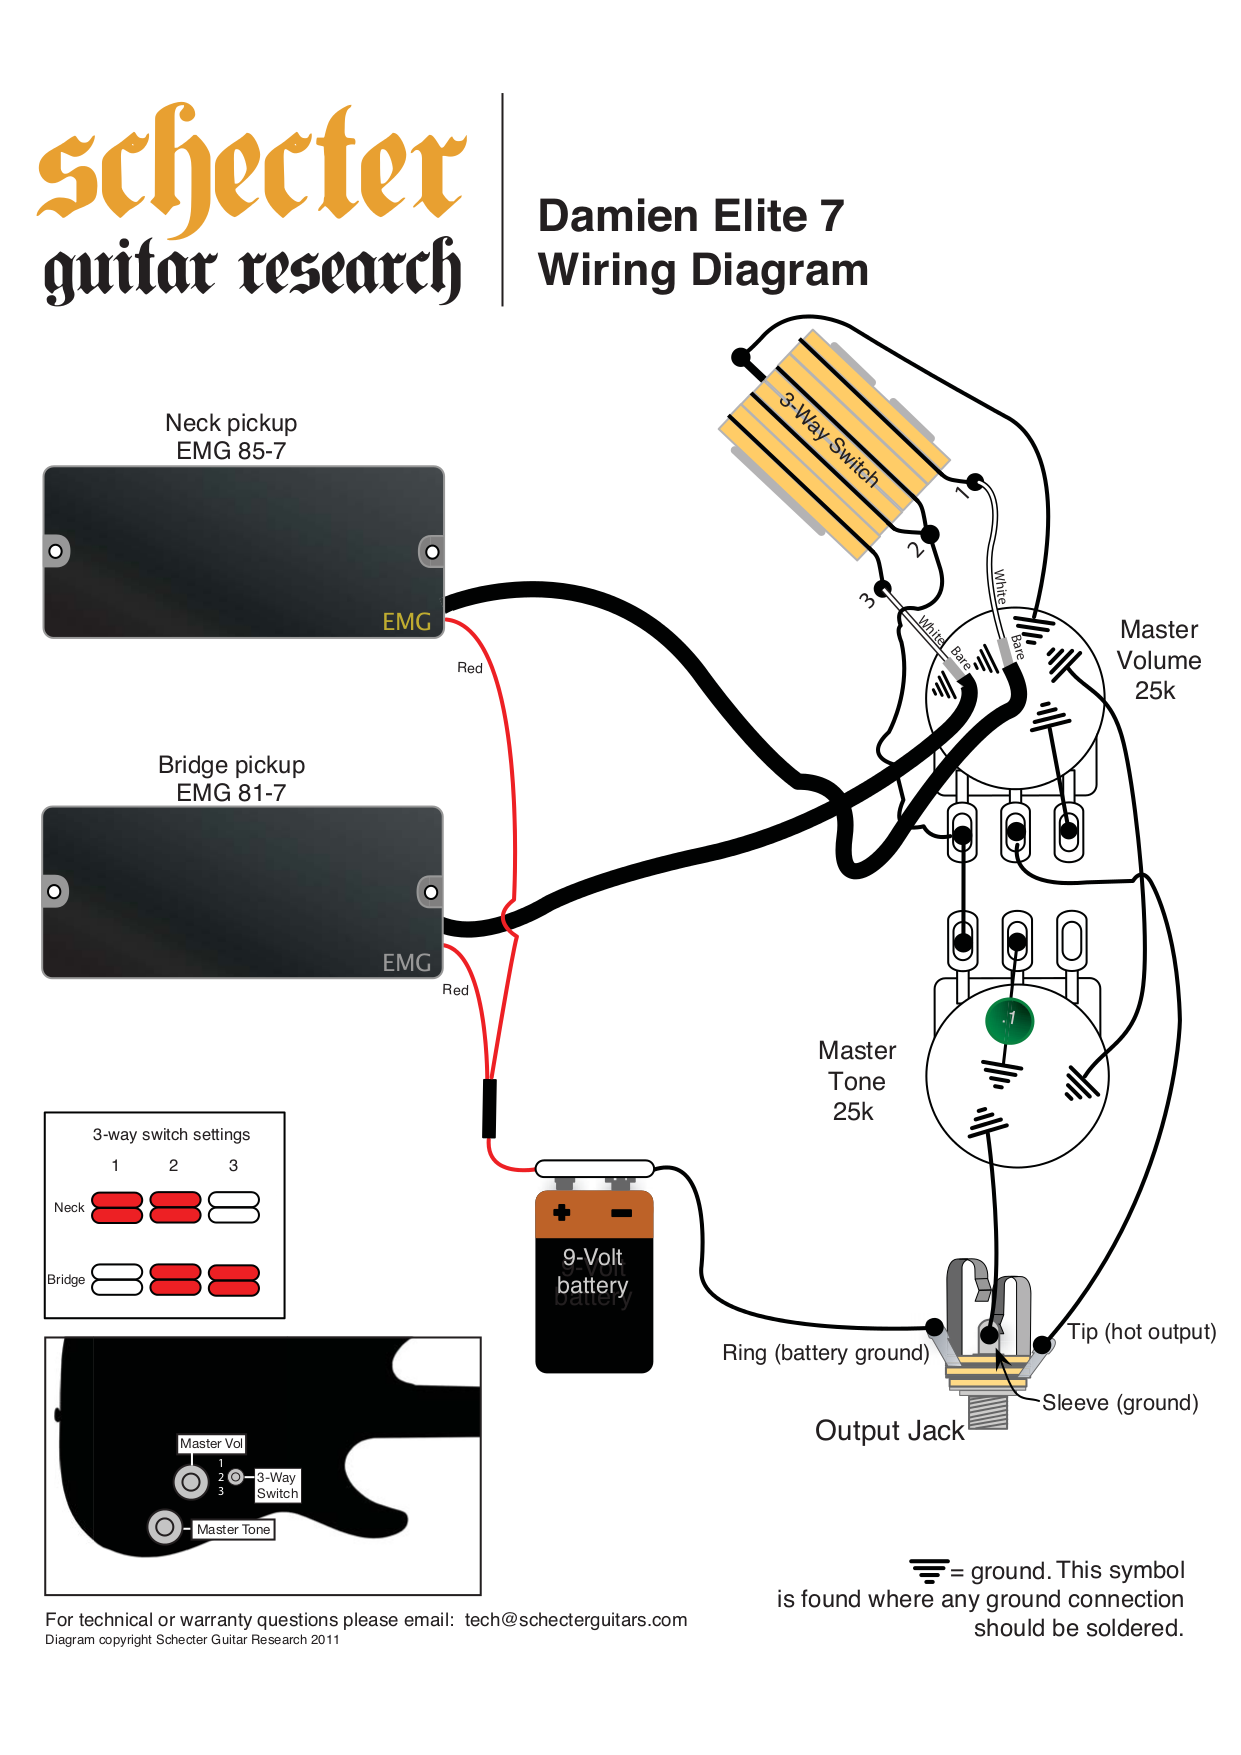 Damien Elite 7.pdf 0 100 [ schecter wiring diagram schecter c ] strat wiring diagram Schecter Diamond Series Wiring Diagram at reclaimingppi.co